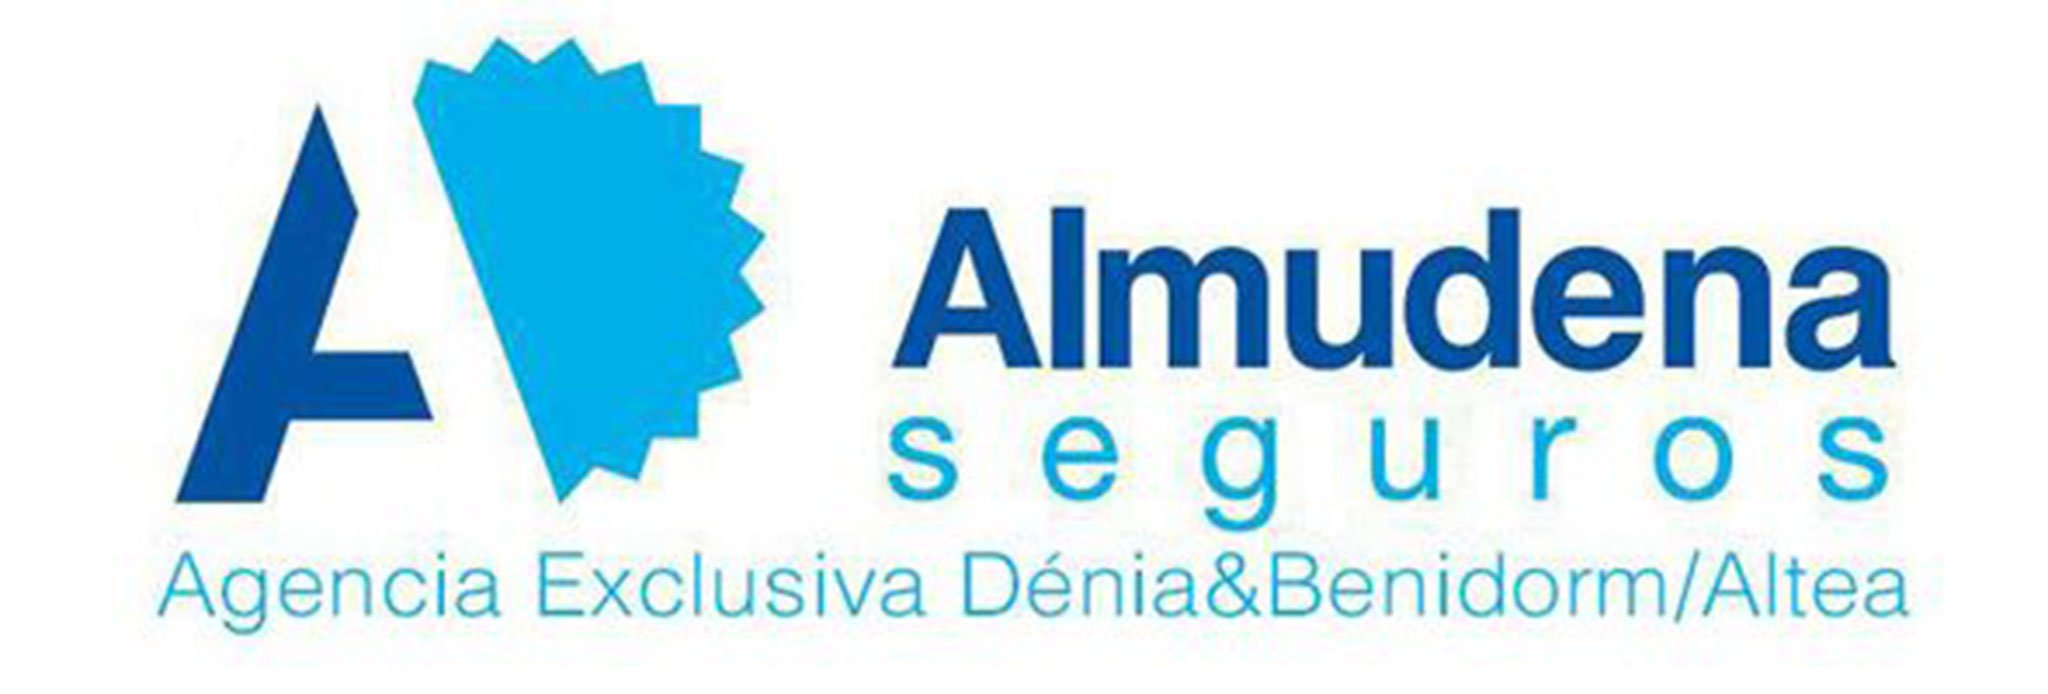 exclusive agency of Almudena Seguros in our area - Almudena Seguros Dénia Benidorm Altea